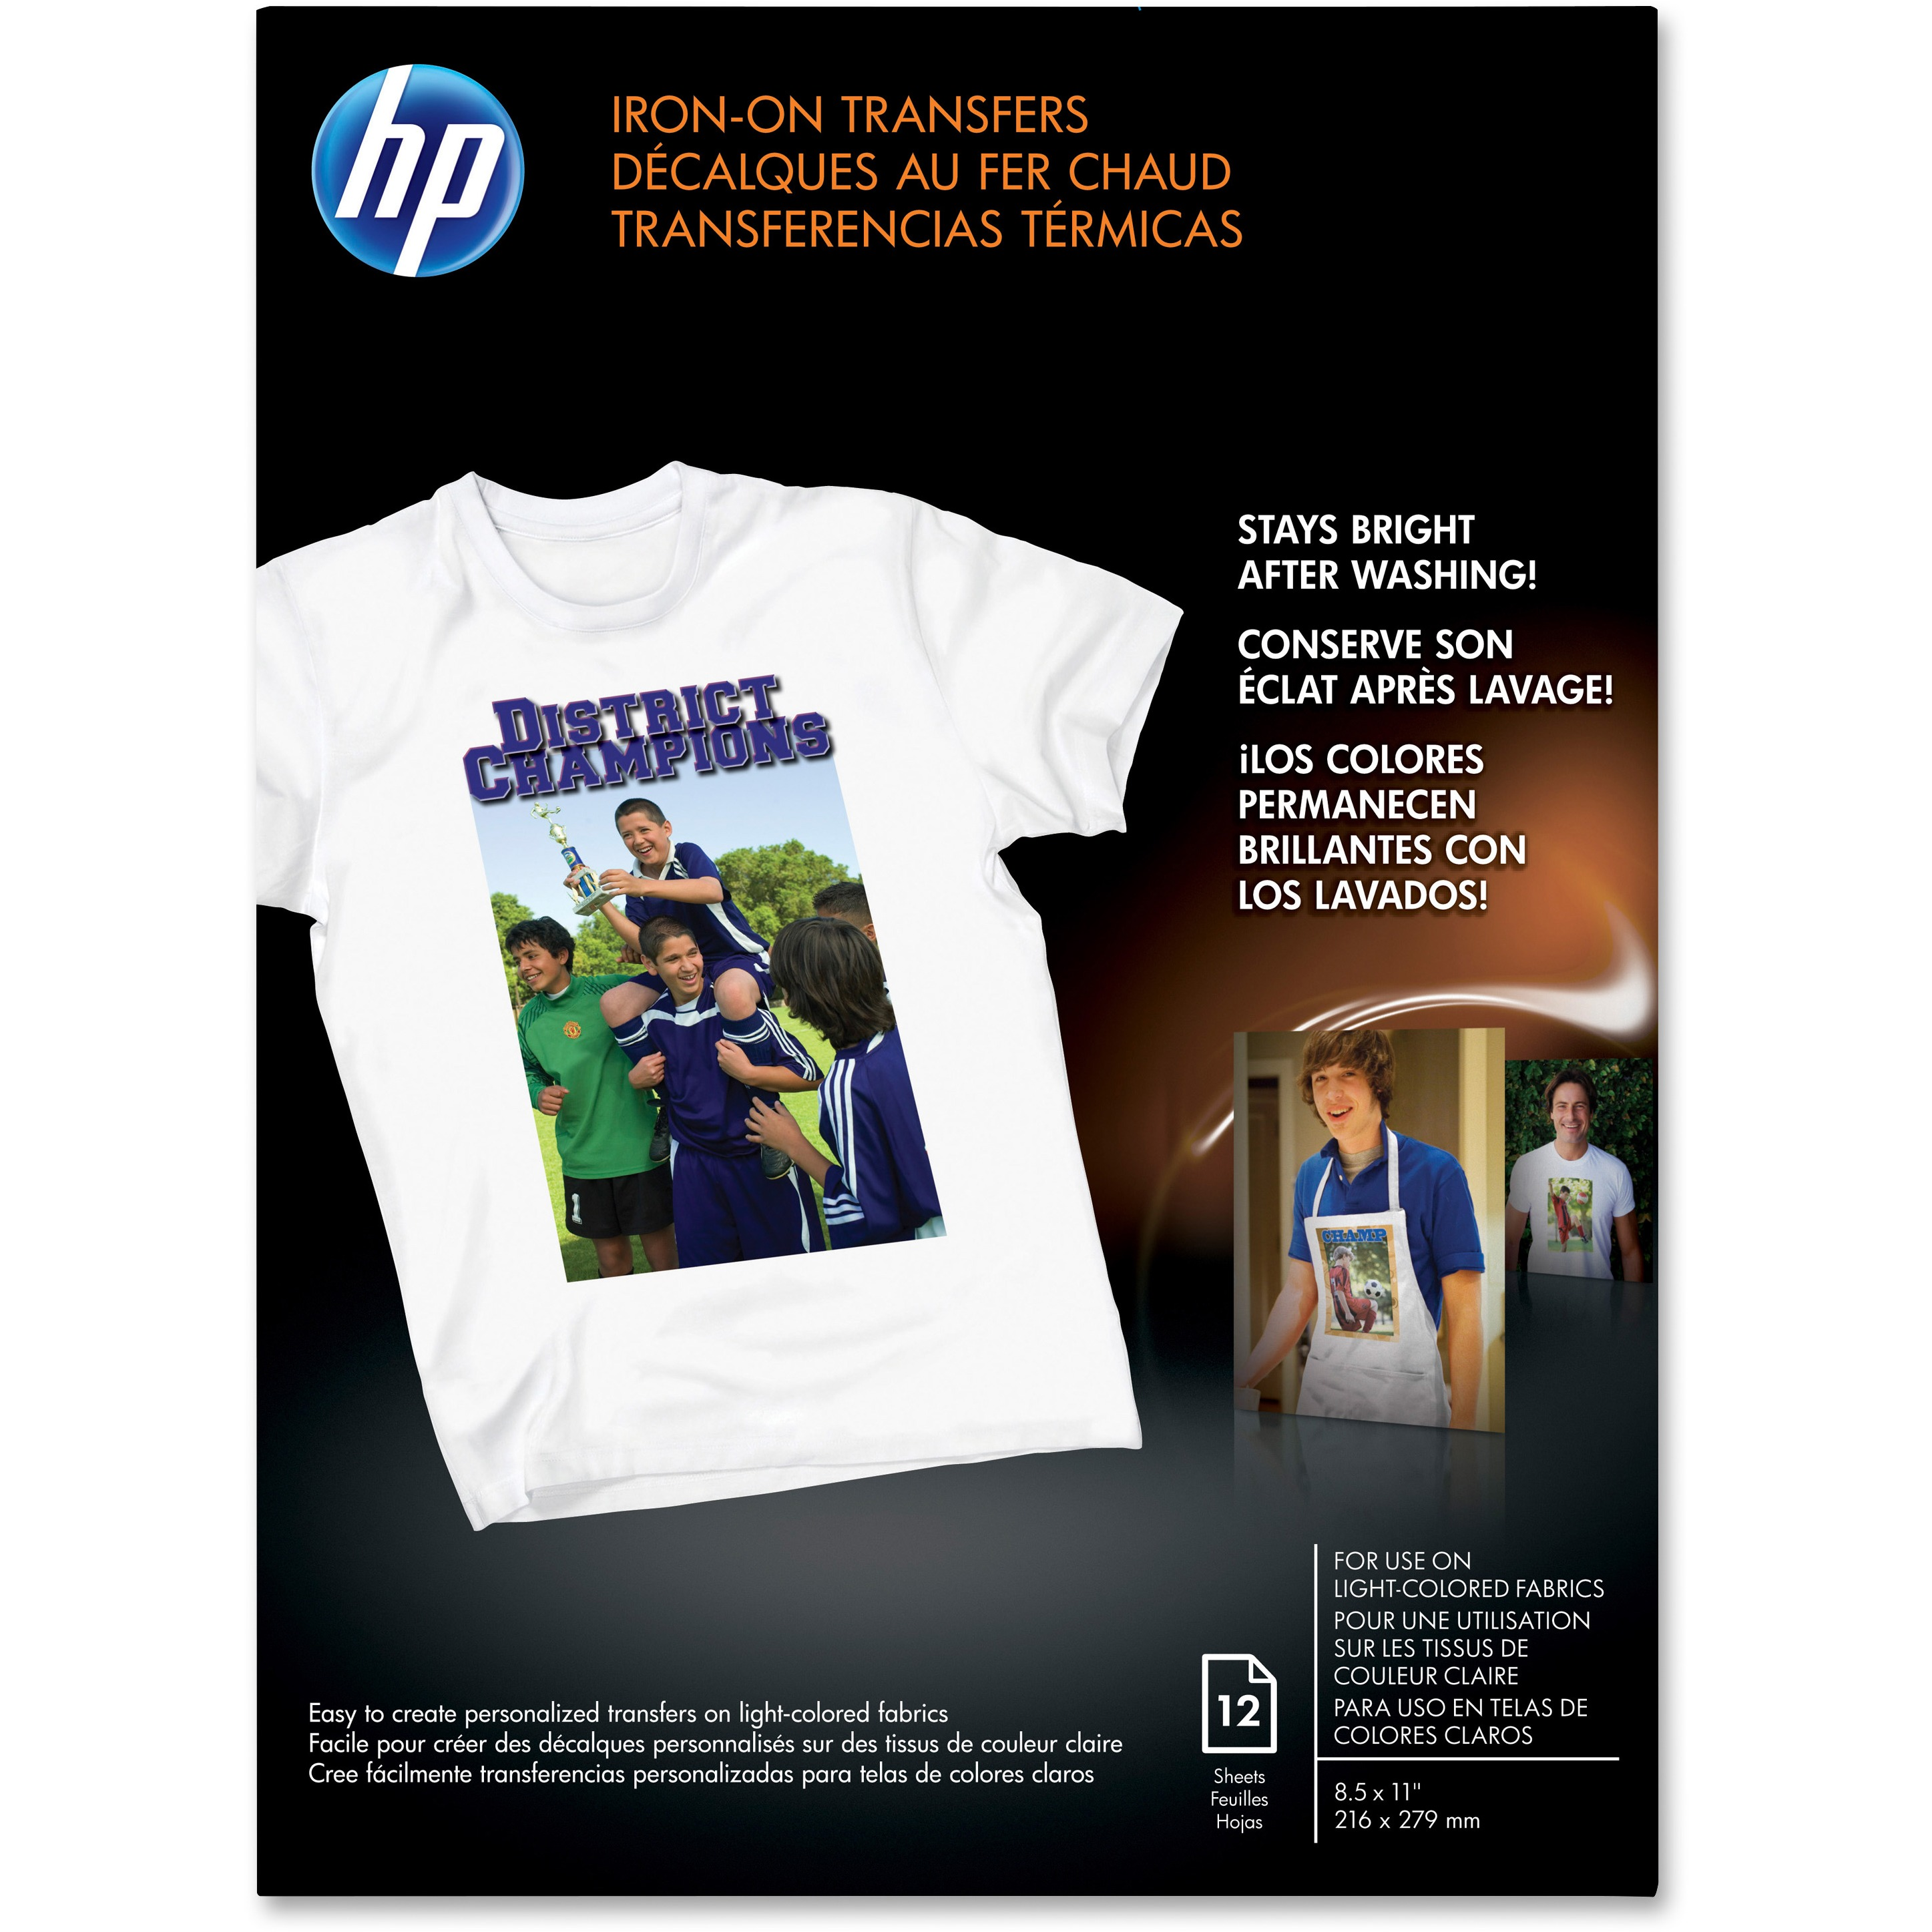 HP Iron-on Transfer Paper, White, 12 / Pack (Quantity)